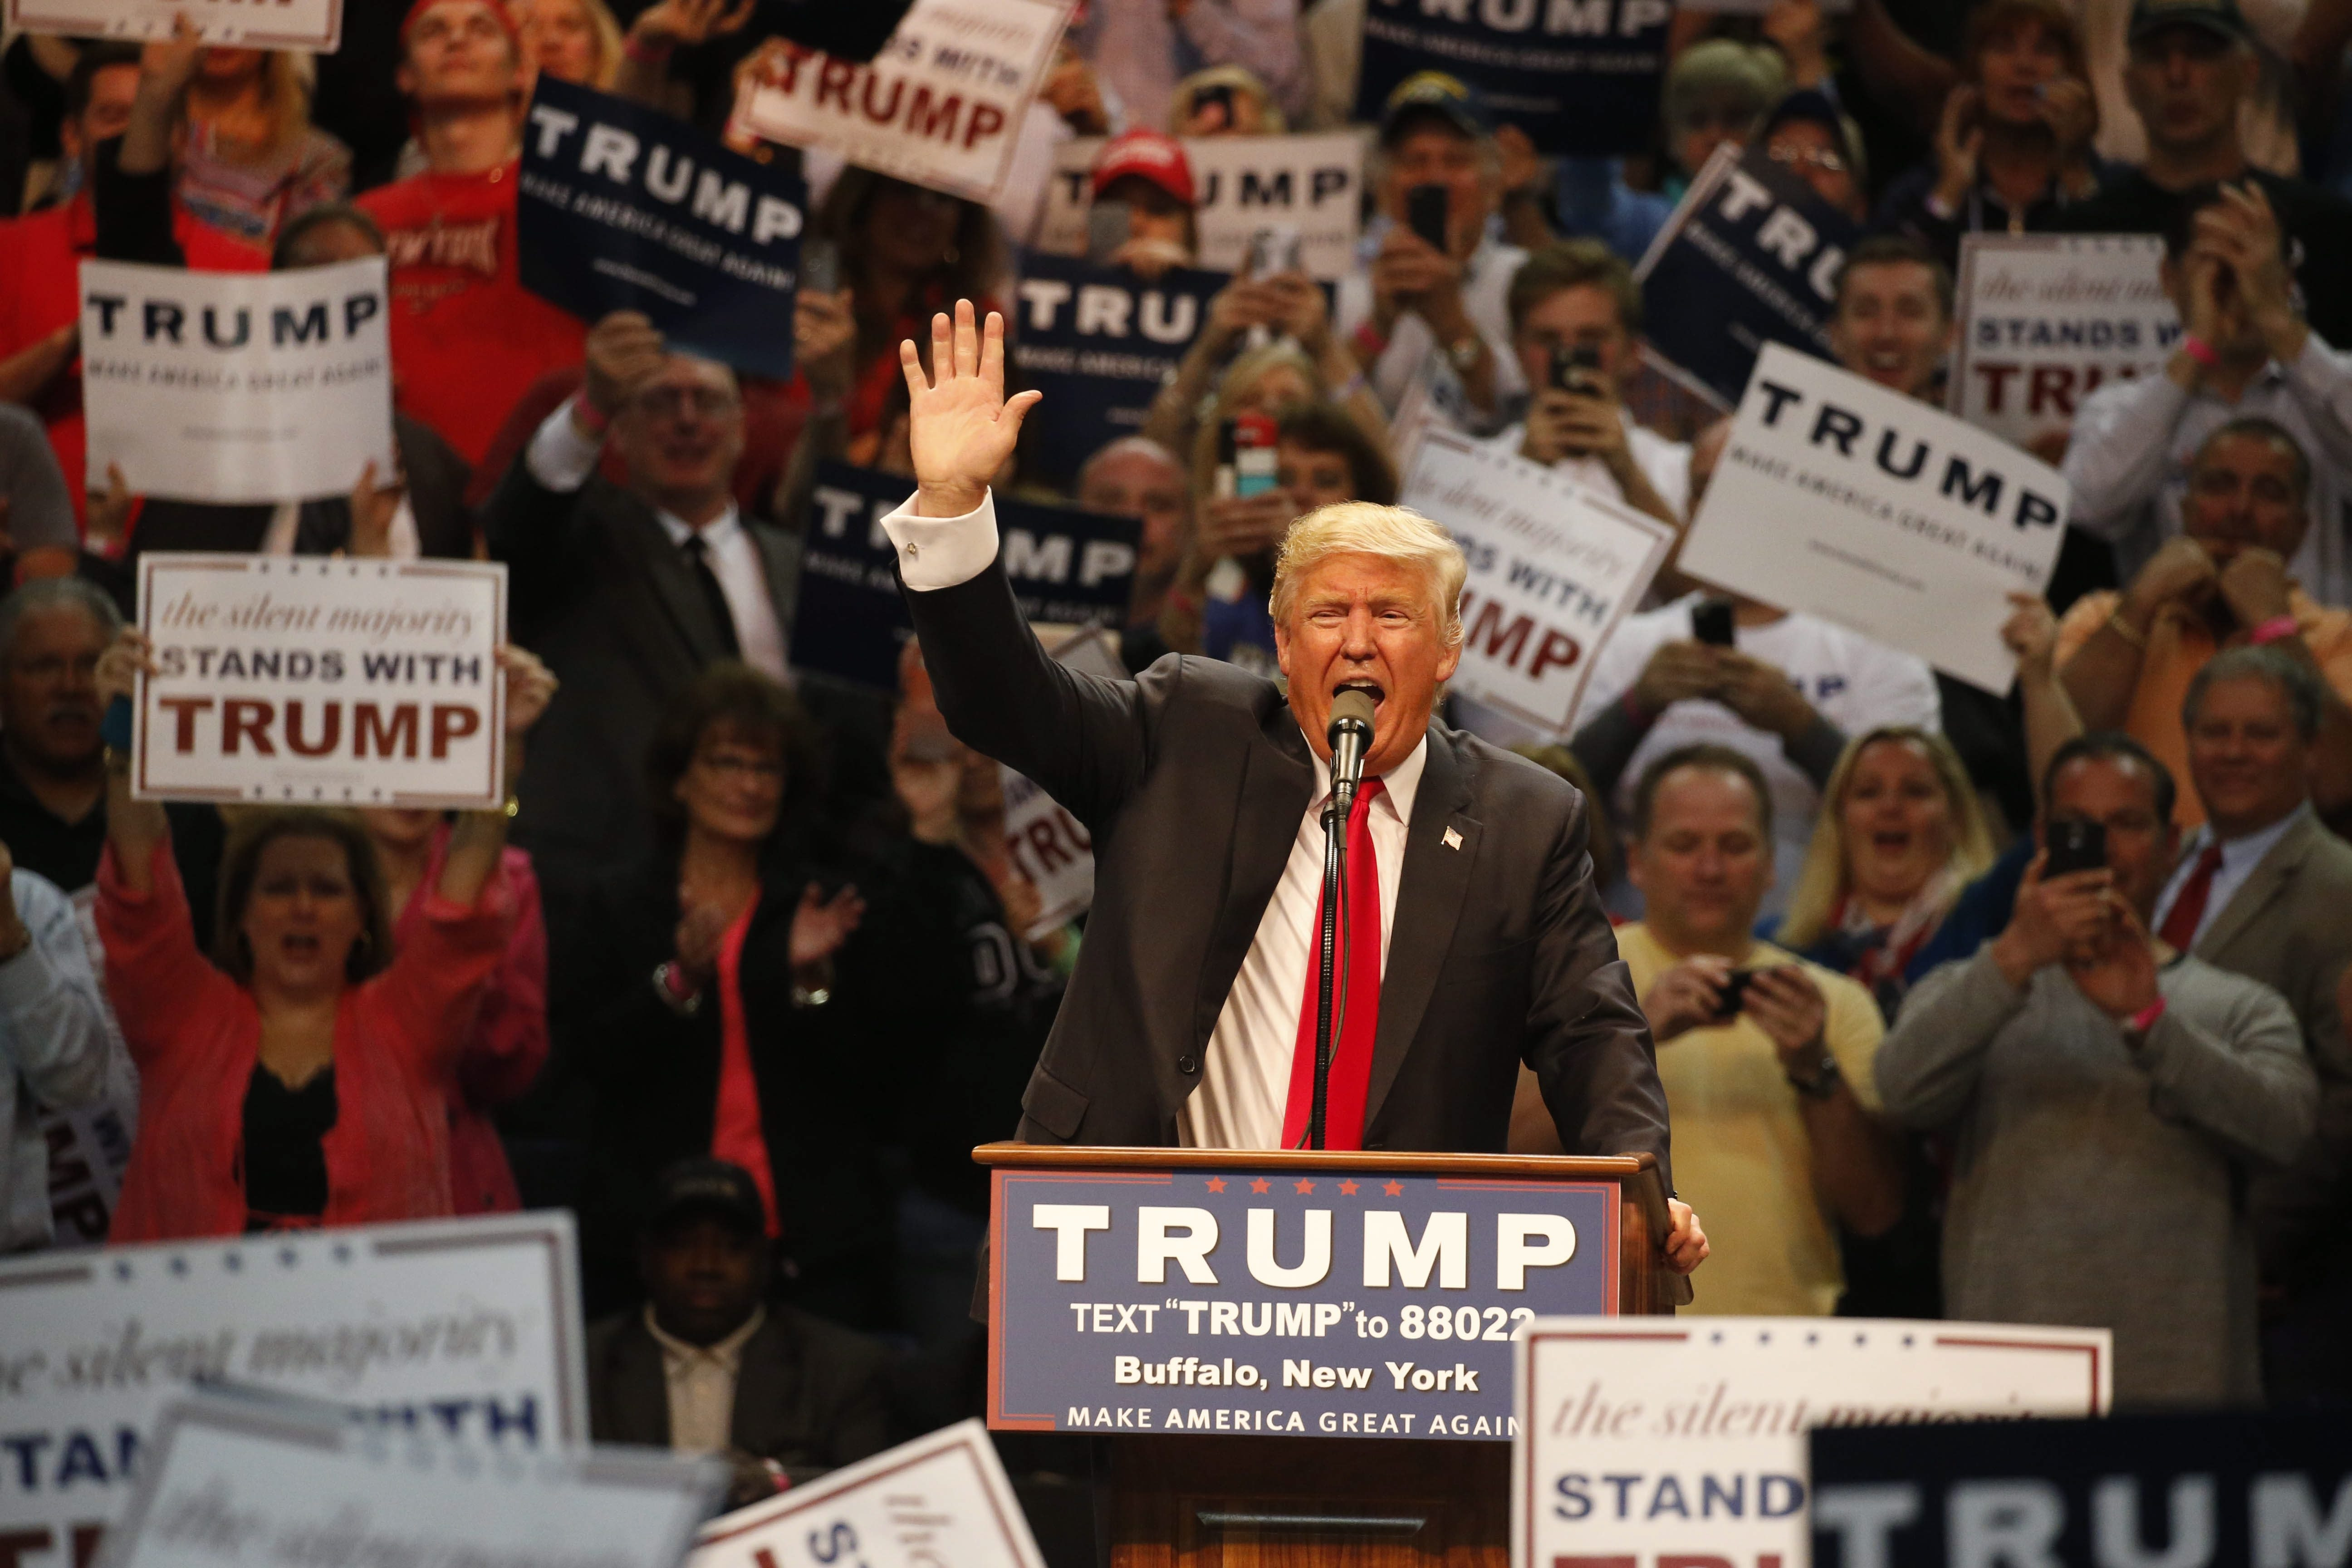 Donald Trump speaks during a rally at First Niagara Center in Buffalo, N.Y.  Monday, April 18, 2016.  (Derek Gee/Buffalo News)